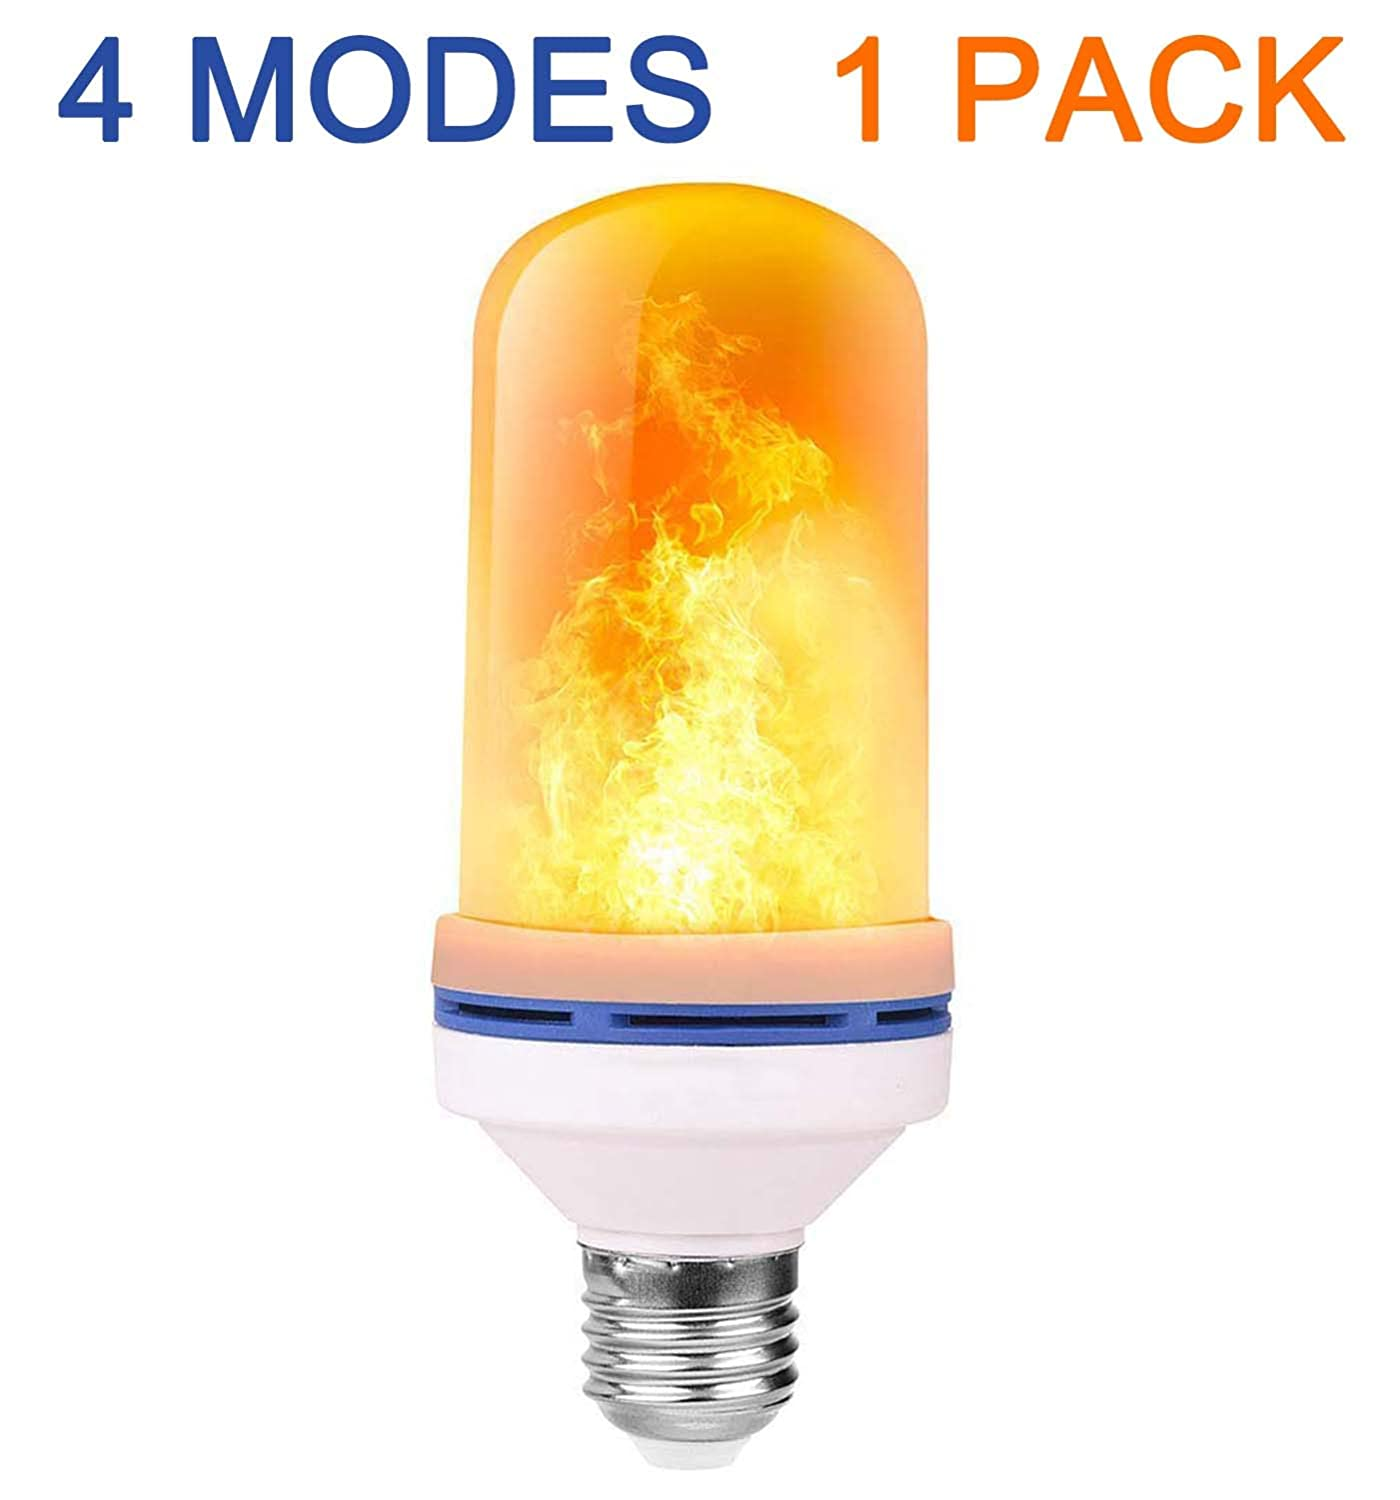 4 Pack LED Flame Effect Fire Light Bulbs with Upside Down Effect Simulated Decorative Flickering Light Atmosphere Lighting Flaming Lamp Flame Bulb for Christmas Home//Hotel//Bar Party Decoration